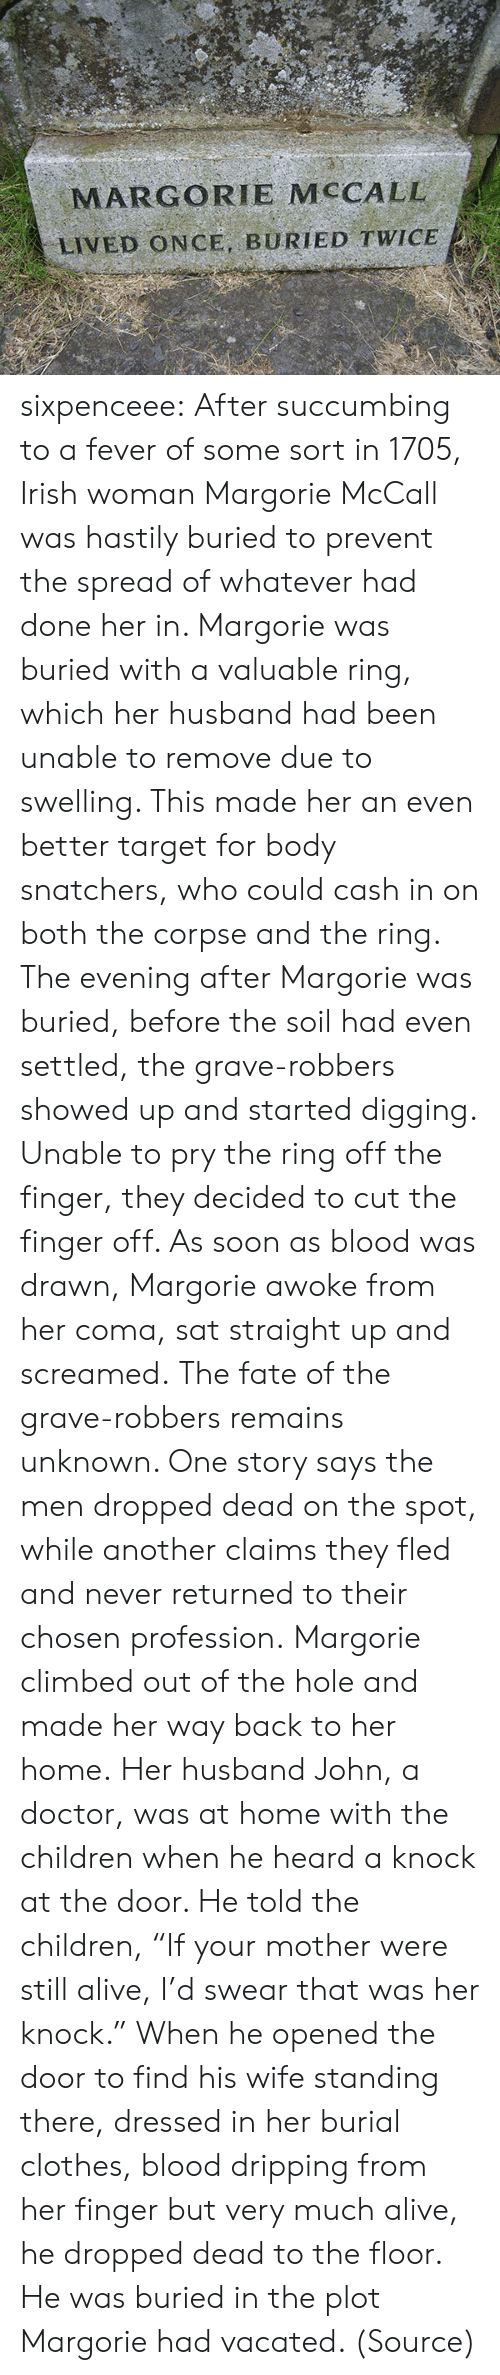 "profession: MARGORIE MCCALL  LIVED ONCE, BURIED TWICE sixpenceee:  After succumbing to a fever of some sort in 1705, Irish woman Margorie McCall was hastily buried to prevent the spread of whatever had done her in. Margorie was buried with a valuable ring, which her husband had been unable to remove due to swelling. This made her an even better target for body snatchers, who could cash in on both the corpse and the ring. The evening after Margorie was buried, before the soil had even settled, the grave-robbers showed up and started digging. Unable to pry the ring off the finger, they decided to cut the finger off. As soon as blood was drawn, Margorie awoke from her coma, sat straight up and screamed. The fate of the grave-robbers remains unknown. One story says the men dropped dead on the spot, while another claims they fled and never returned to their chosen profession. Margorie climbed out of the hole and made her way back to her home. Her husband John, a doctor, was at home with the children when he heard a knock at the door. He told the children, ""If your mother were still alive, I'd swear that was her knock."" When he opened the door to find his wife standing there, dressed in her burial clothes, blood dripping from her finger but very much alive, he dropped dead to the floor. He was buried in the plot Margorie had vacated. (Source)"